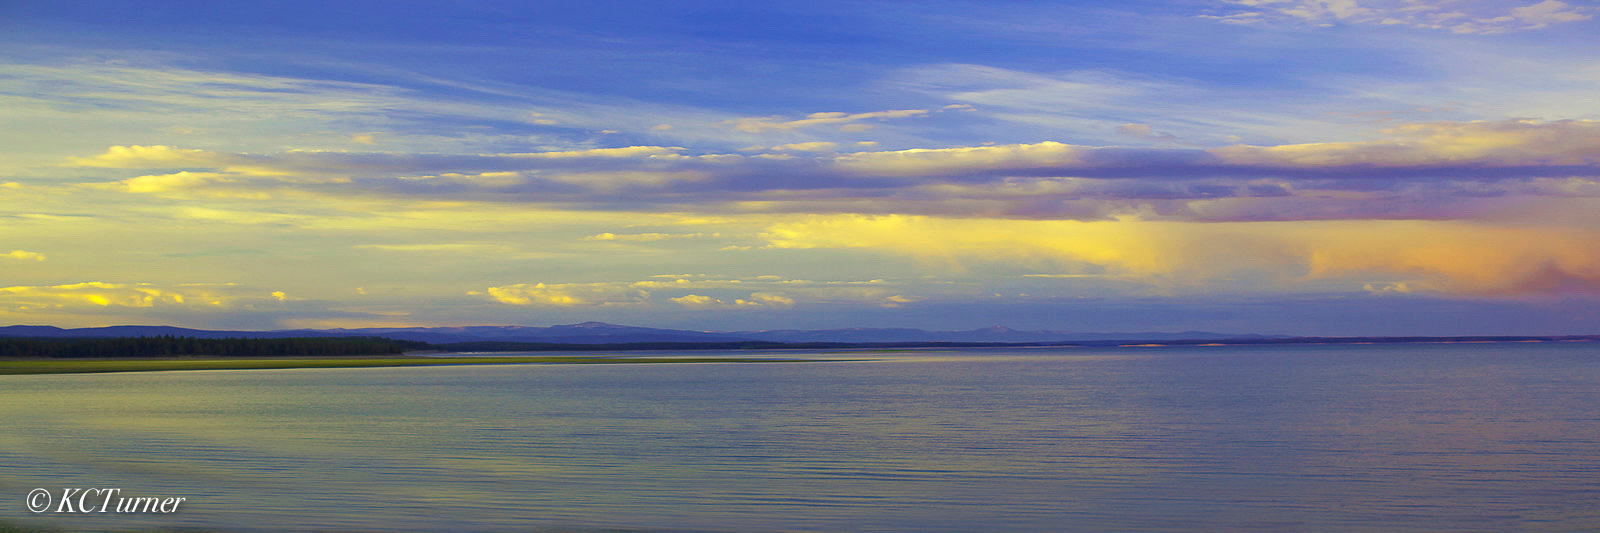 panoramic, landscape, Yellowstone Lake, sun down, captivated, photo shoot, shoreline, bold, dramatic, expressionistic, capture, Yellow Stone National Park, photo